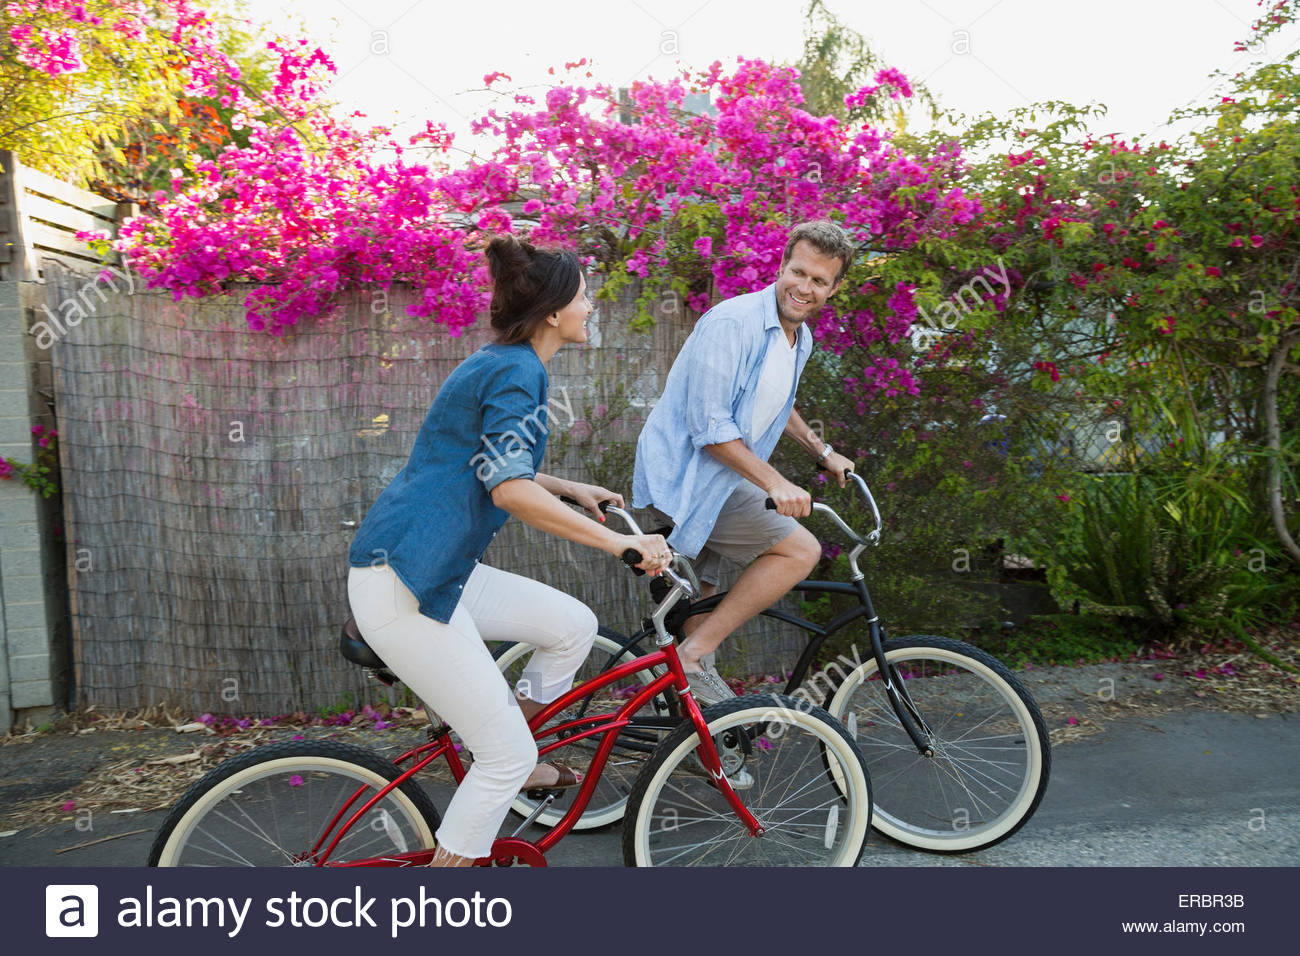 Couple riding bicycles along bougainvillea tree - Stock Image